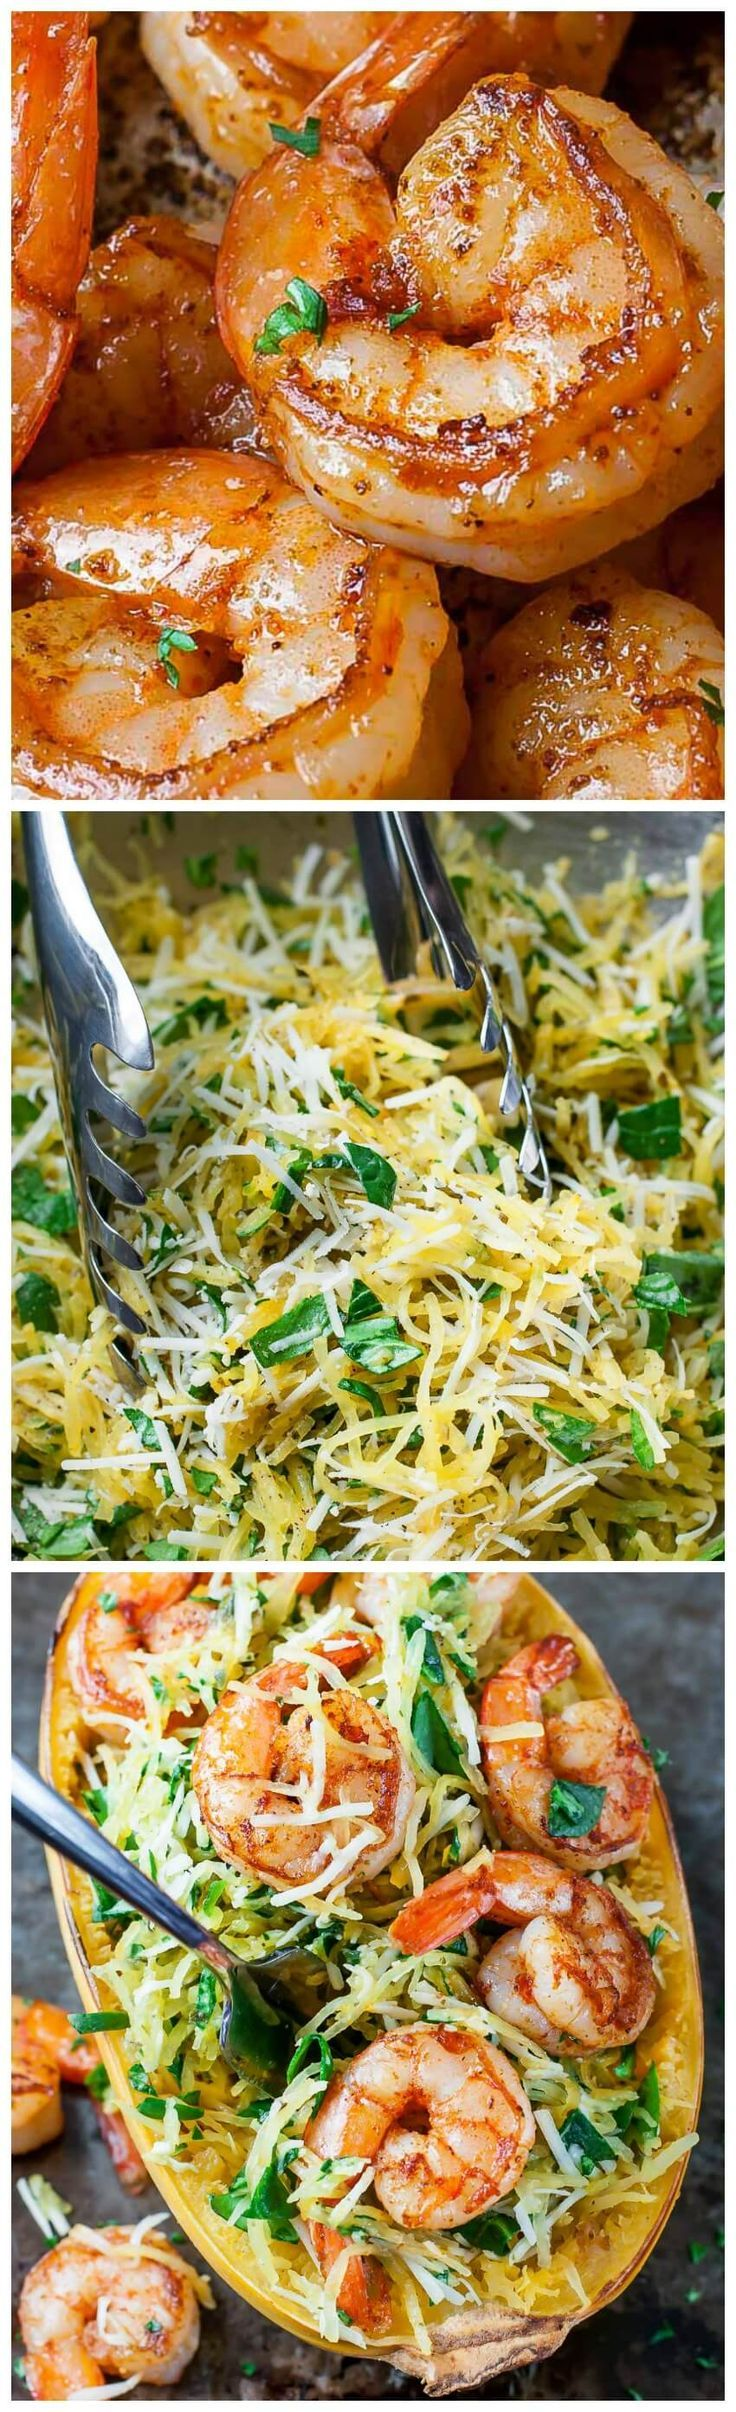 Serve up dinner for two in style with this Pesto Parmesan Spaghetti Squash with Shrimp! Tender strands of squash tossed with spinach, pesto, and parmesan, then topped with the most delicious seasoned